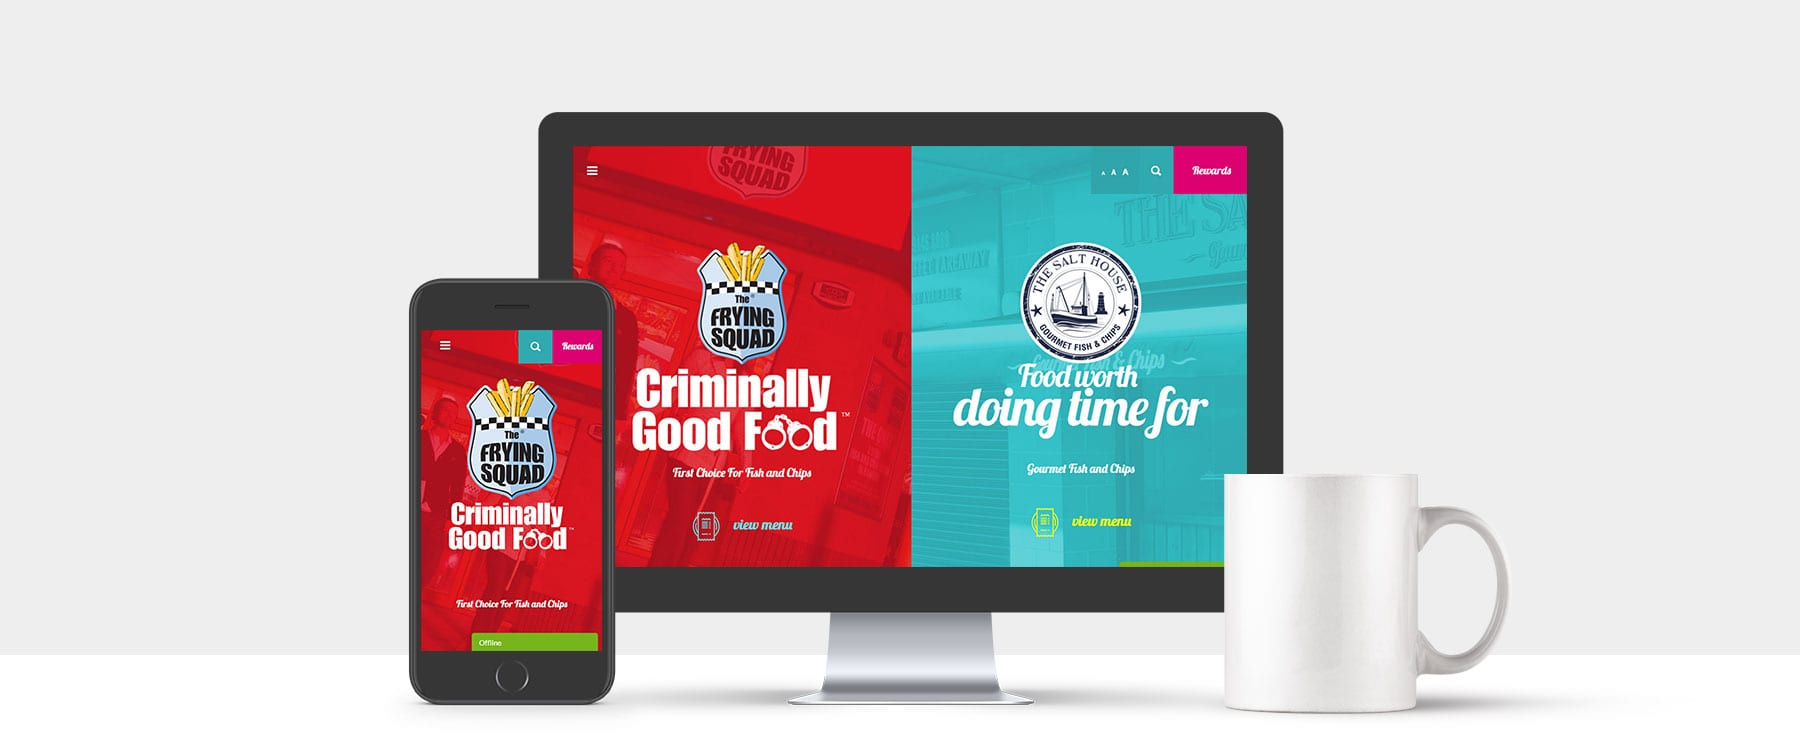 New Website for Multi Award Winning Company The Frying Squad Image